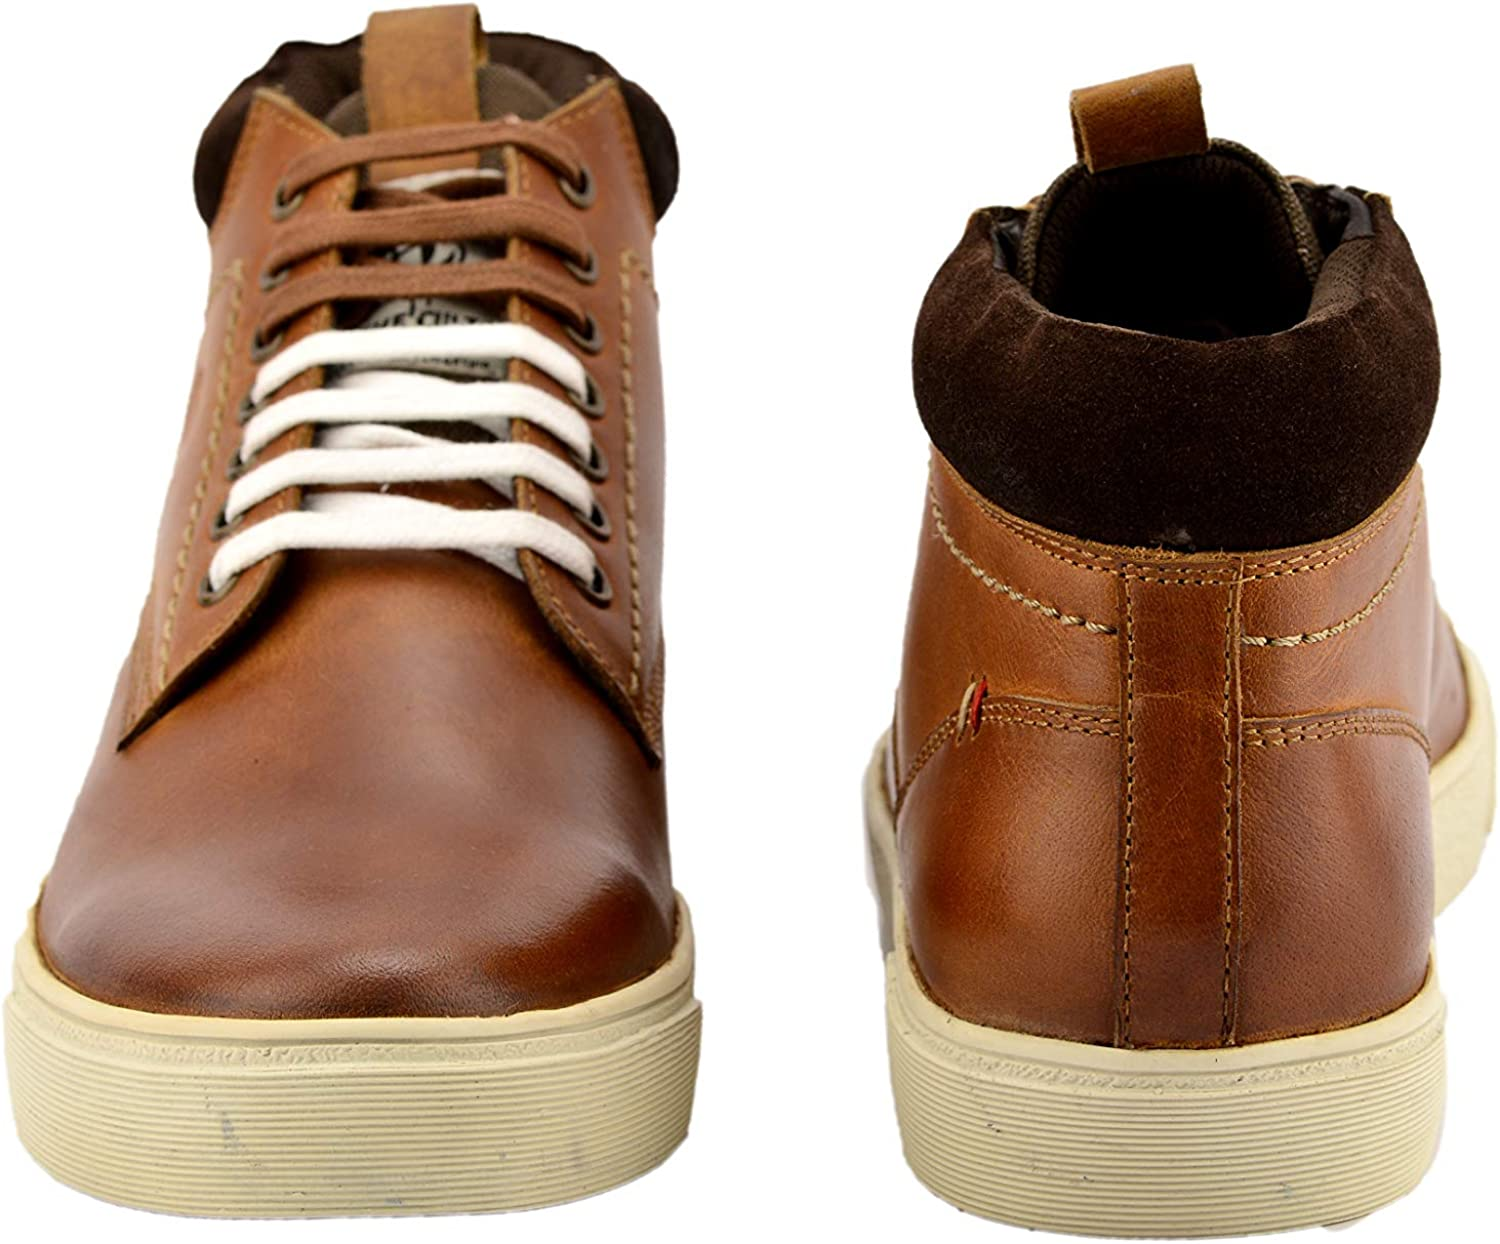 ID Mens Casual Genuine Leather Lace Up High Top Designer Sneakers